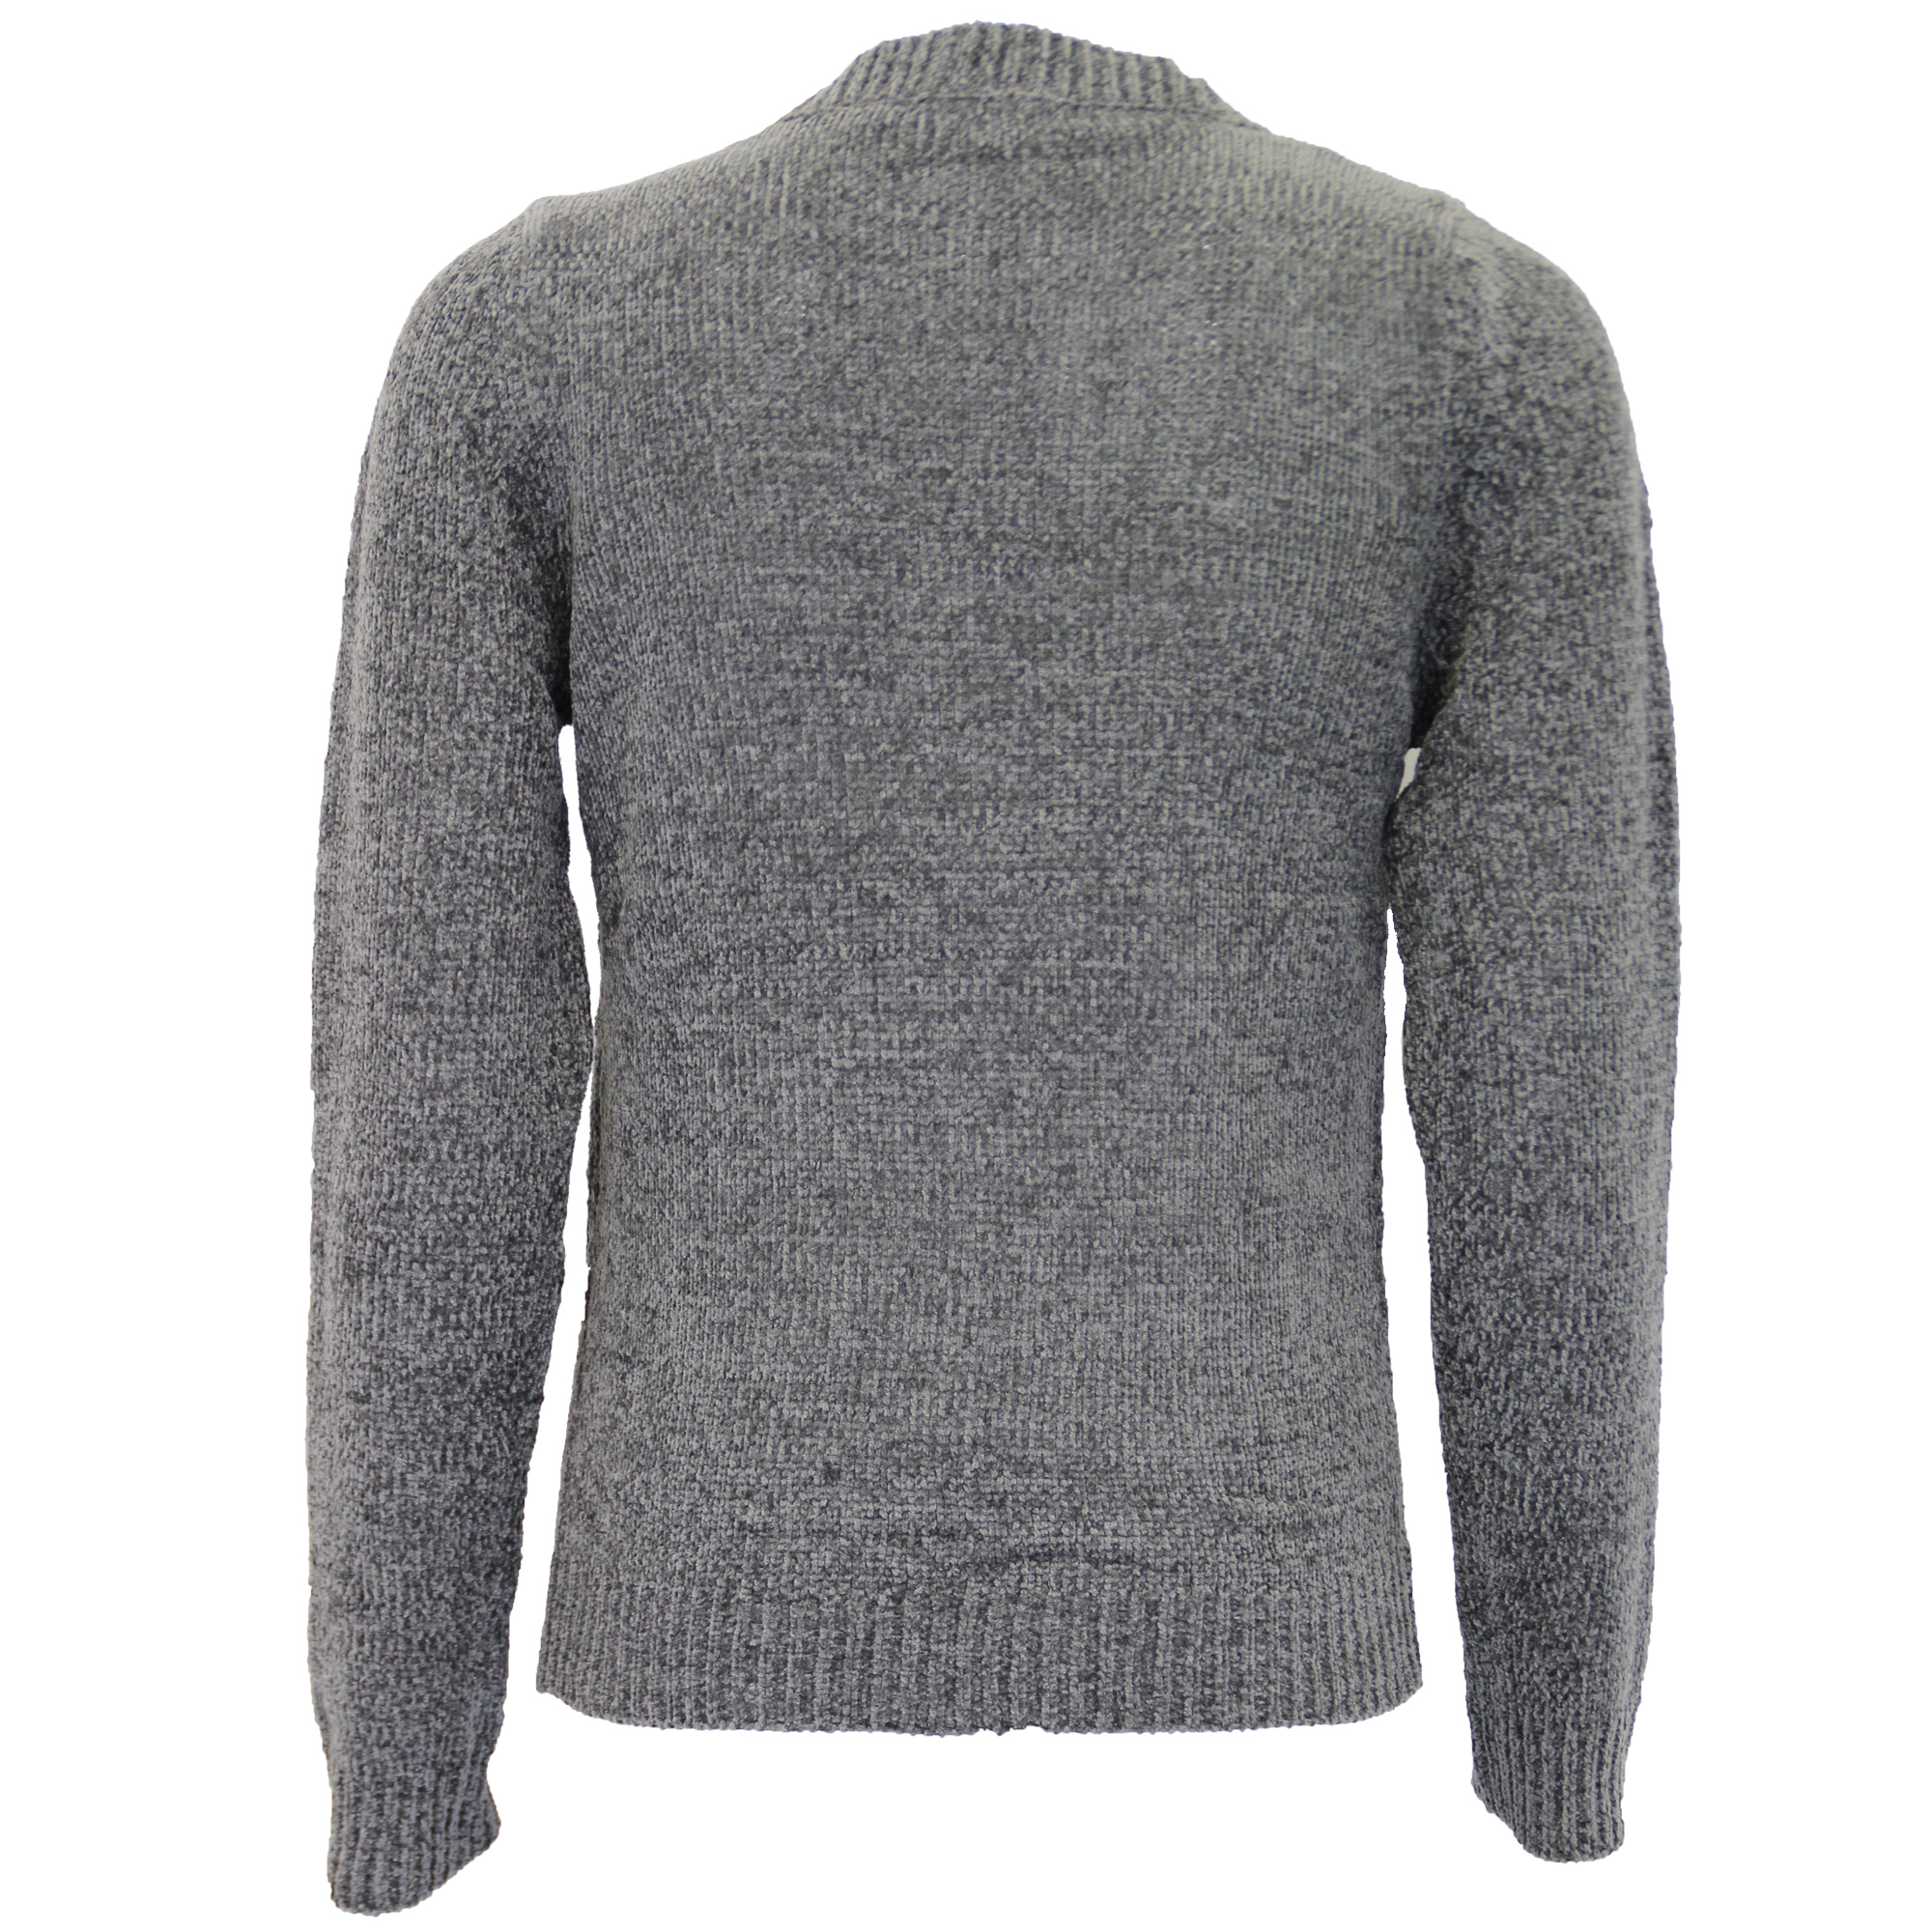 3b3ed21c3029 Ladies Chenille Jumpers Brave Soul Womens Knitted Sweater Pullover ...